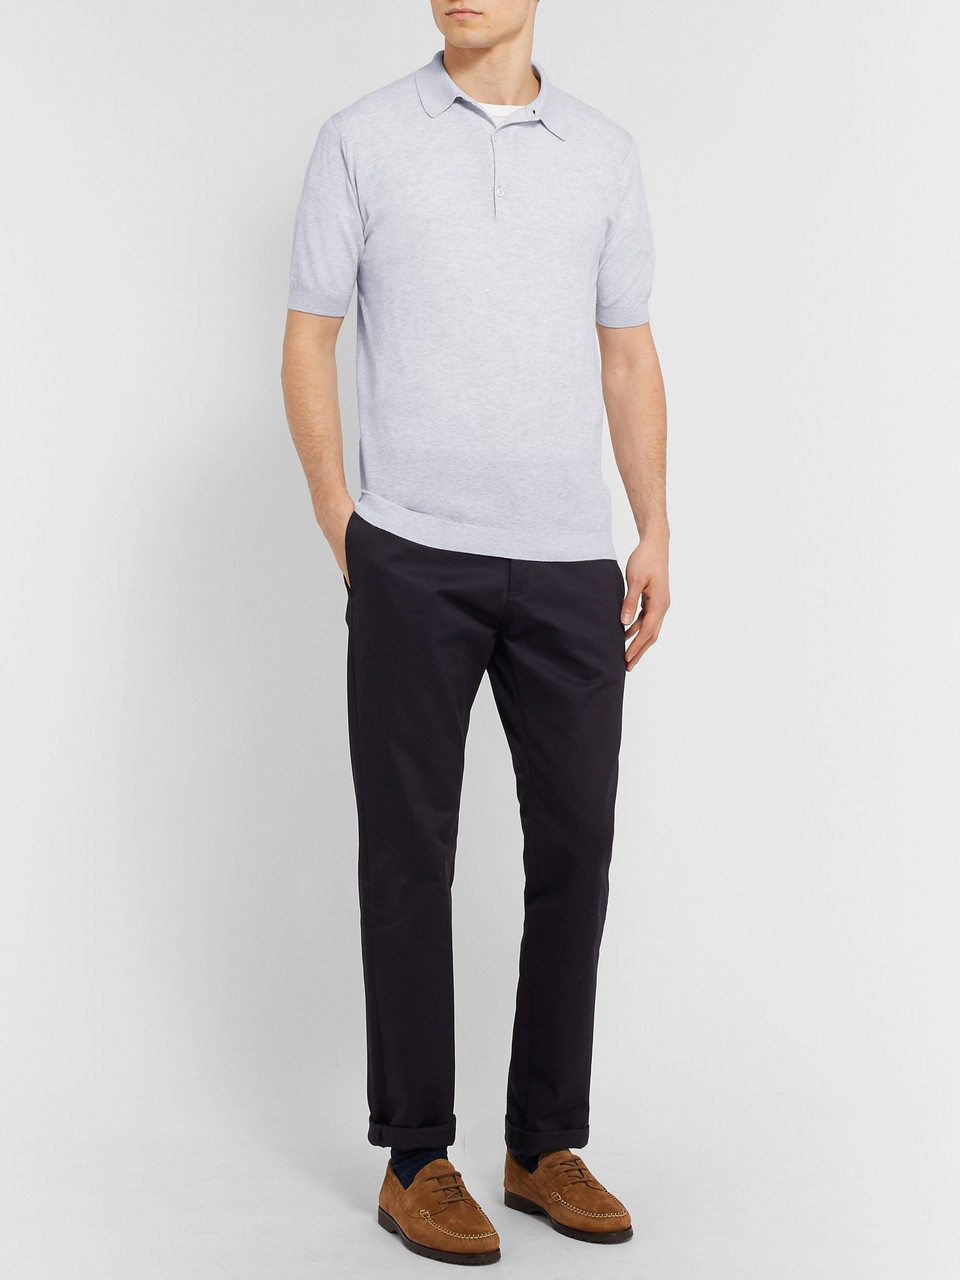 John Smedley Slim-Fit Mélange Sea Island Cotton Polo Shirt